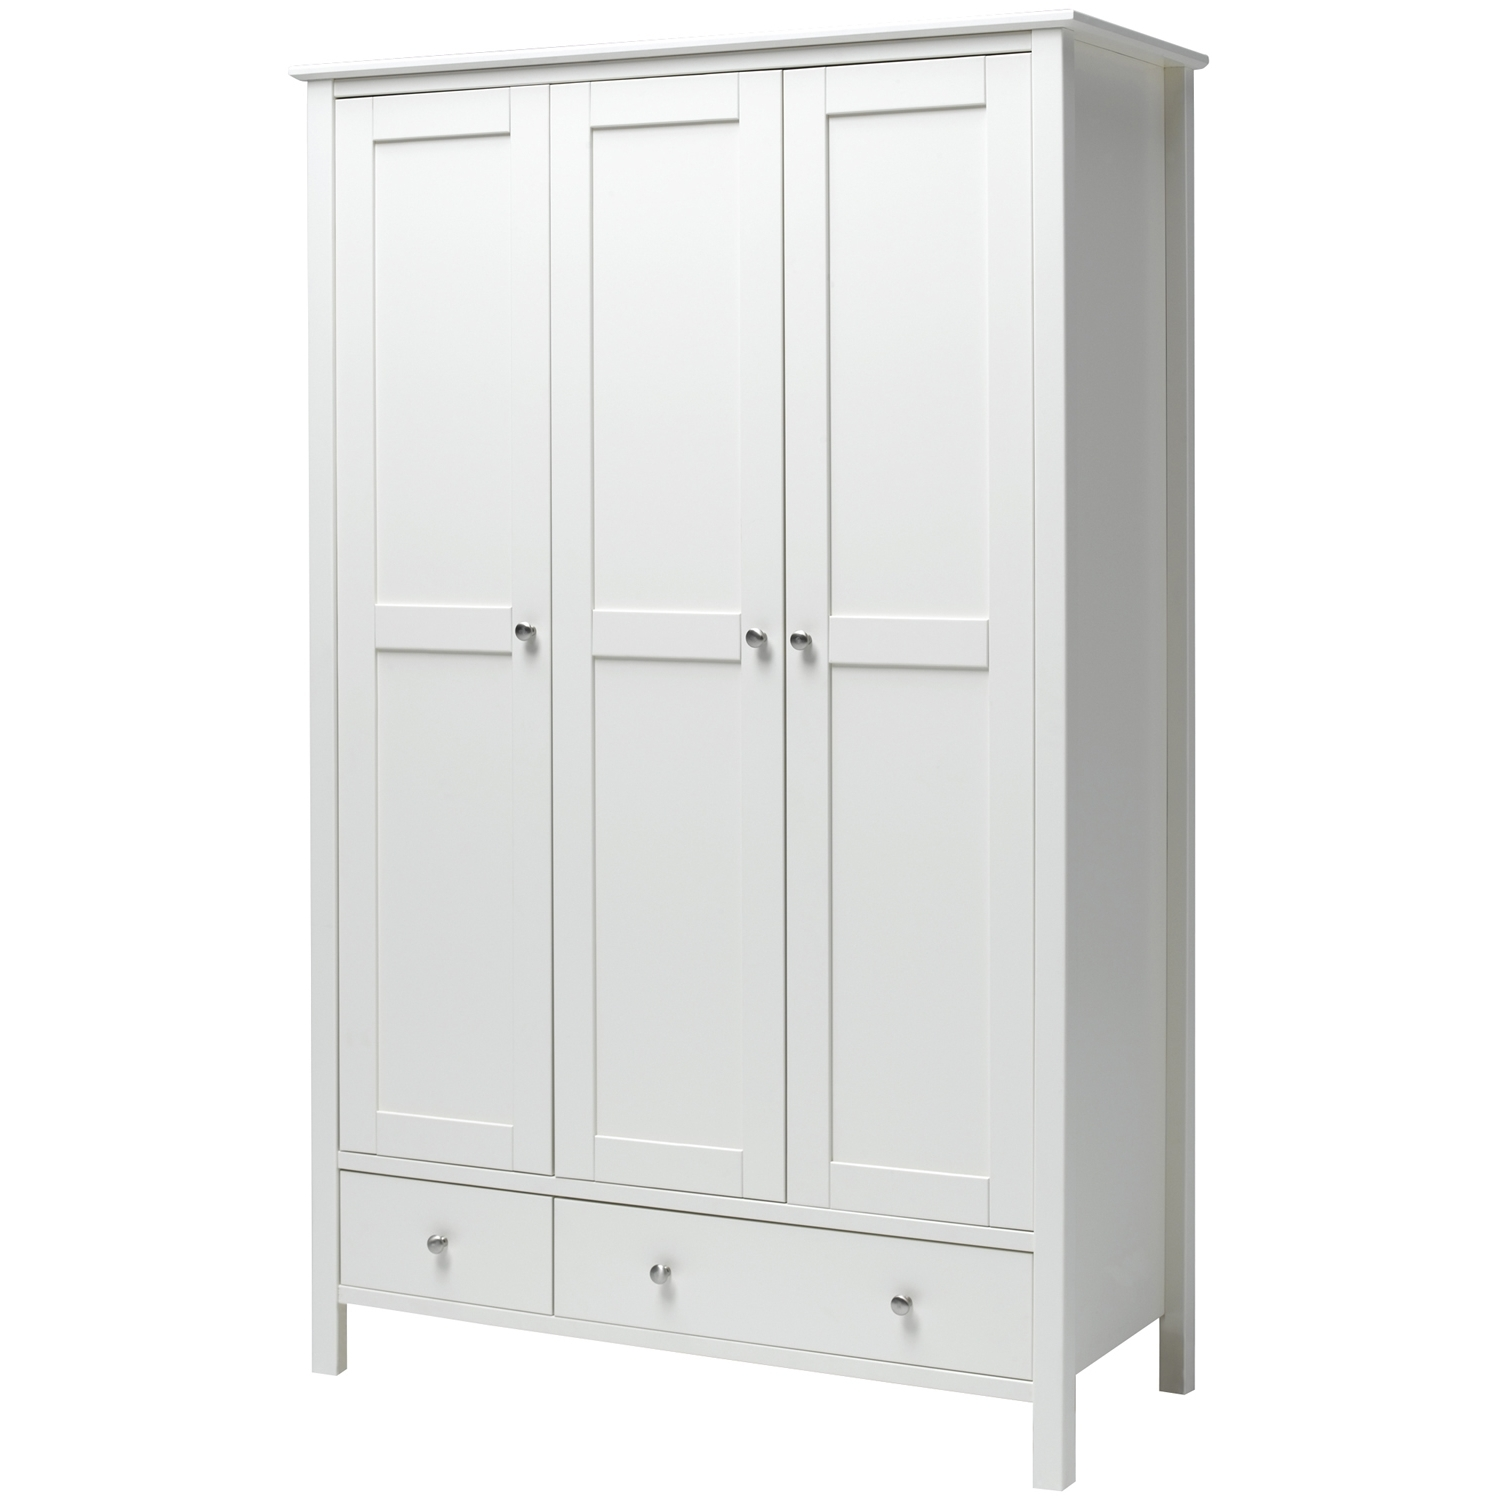 Most Recent White 3 Door Wardrobes Pertaining To Stockholm 3 Door 2 Drawer Wardrobe White – Simply Furniture (View 11 of 15)